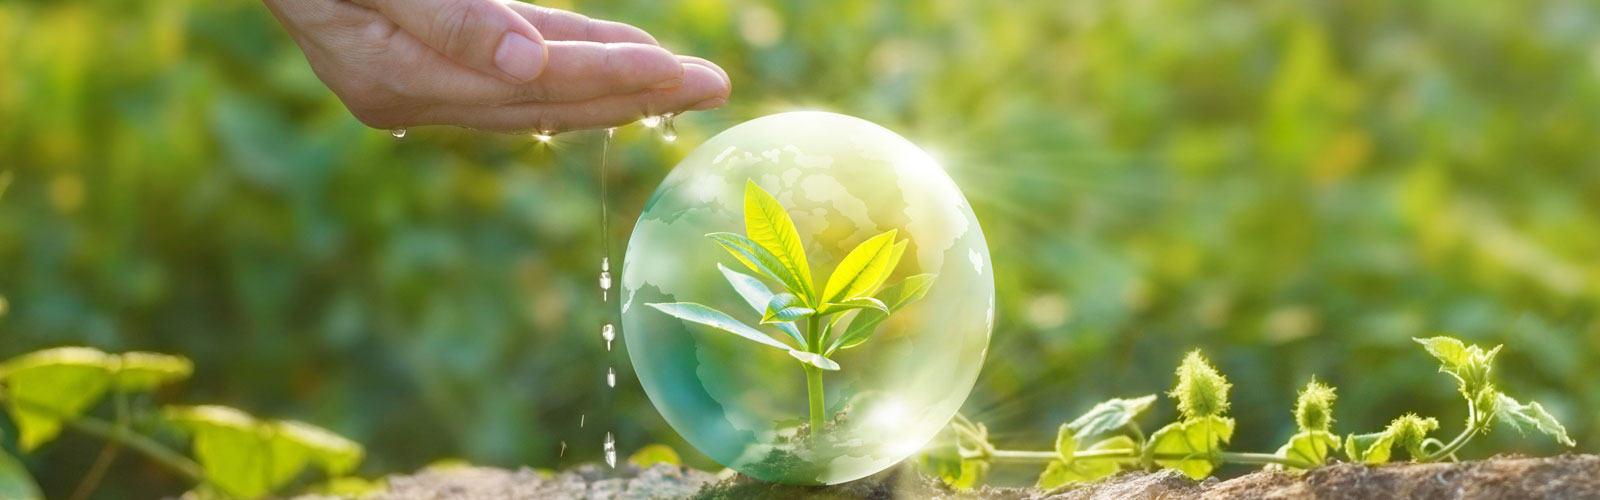 Hand and plant in a water bubble and hand